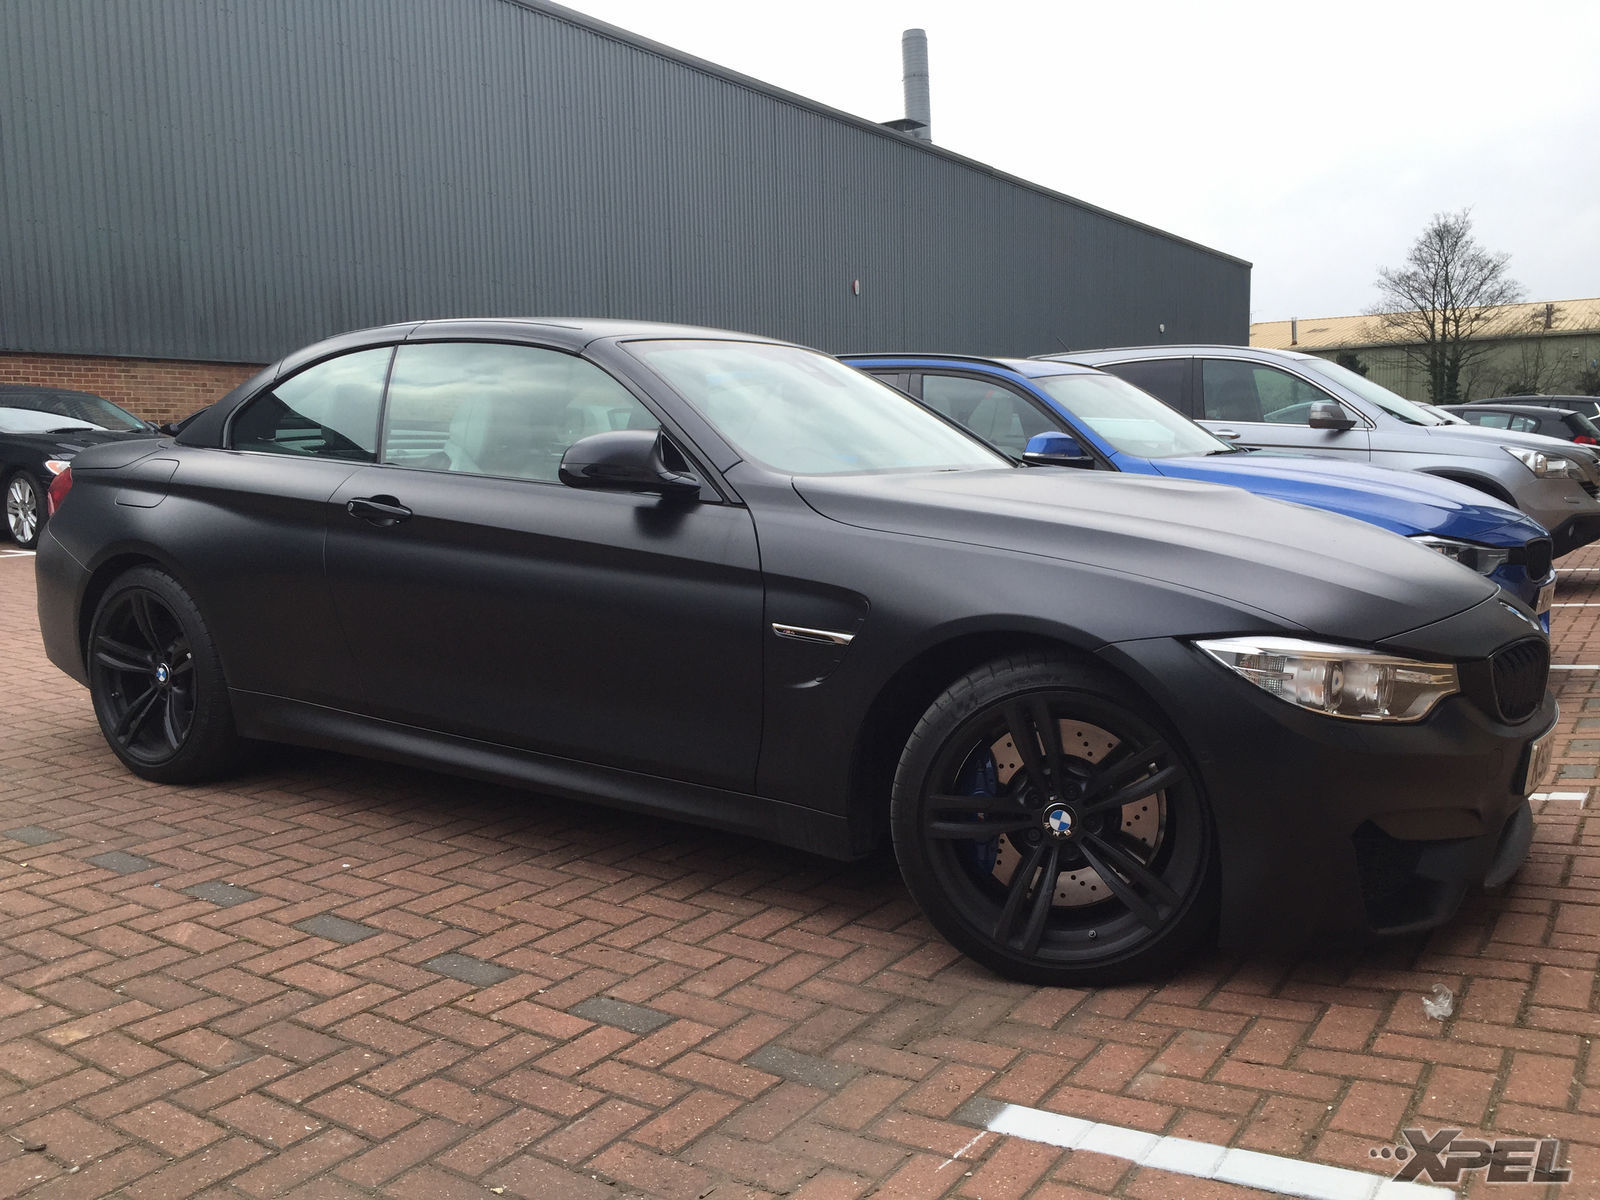 BMW M4 | XPEL STEALTH Satin-Finish clear bra installation